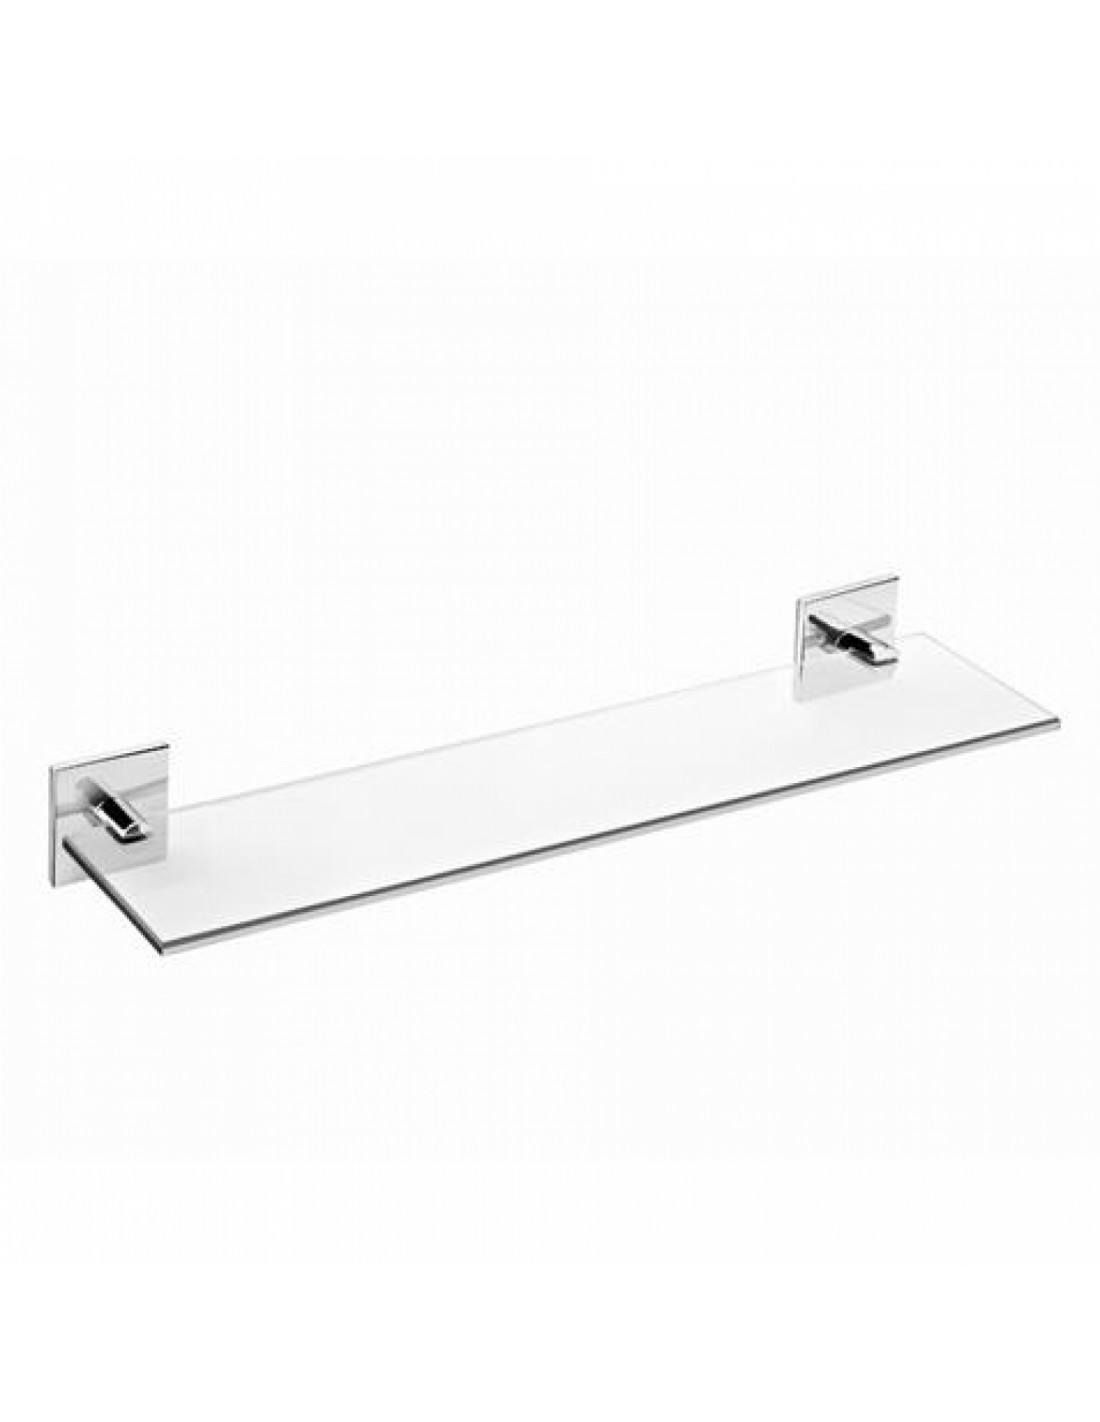 Tablette salle de bain en verre 40 cm coller duo square for Tablette salle de bain